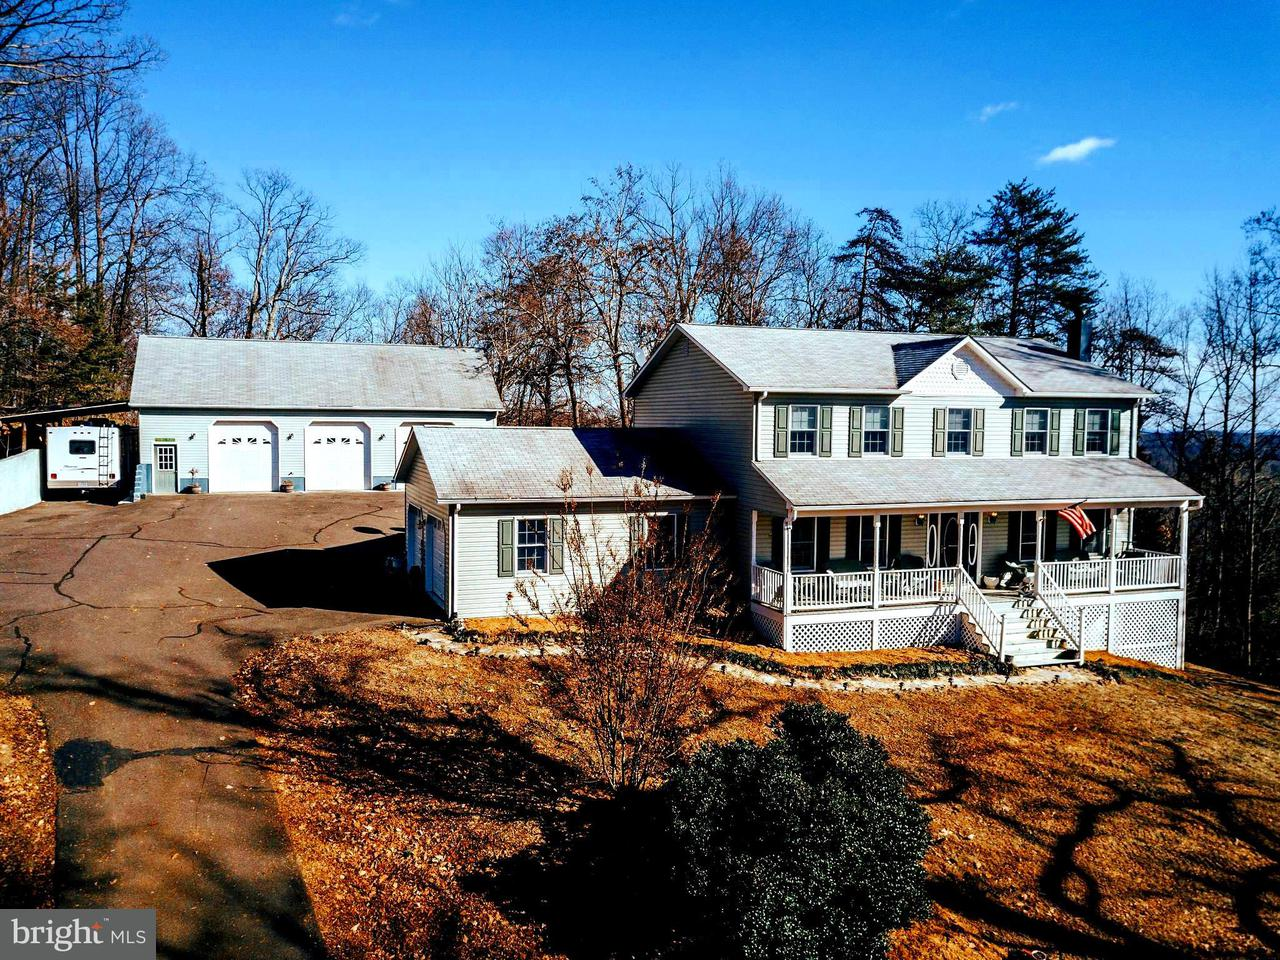 Single Family Home for Sale at 6340 Intervale Road 6340 Intervale Road Reva, Virginia 22735 United States